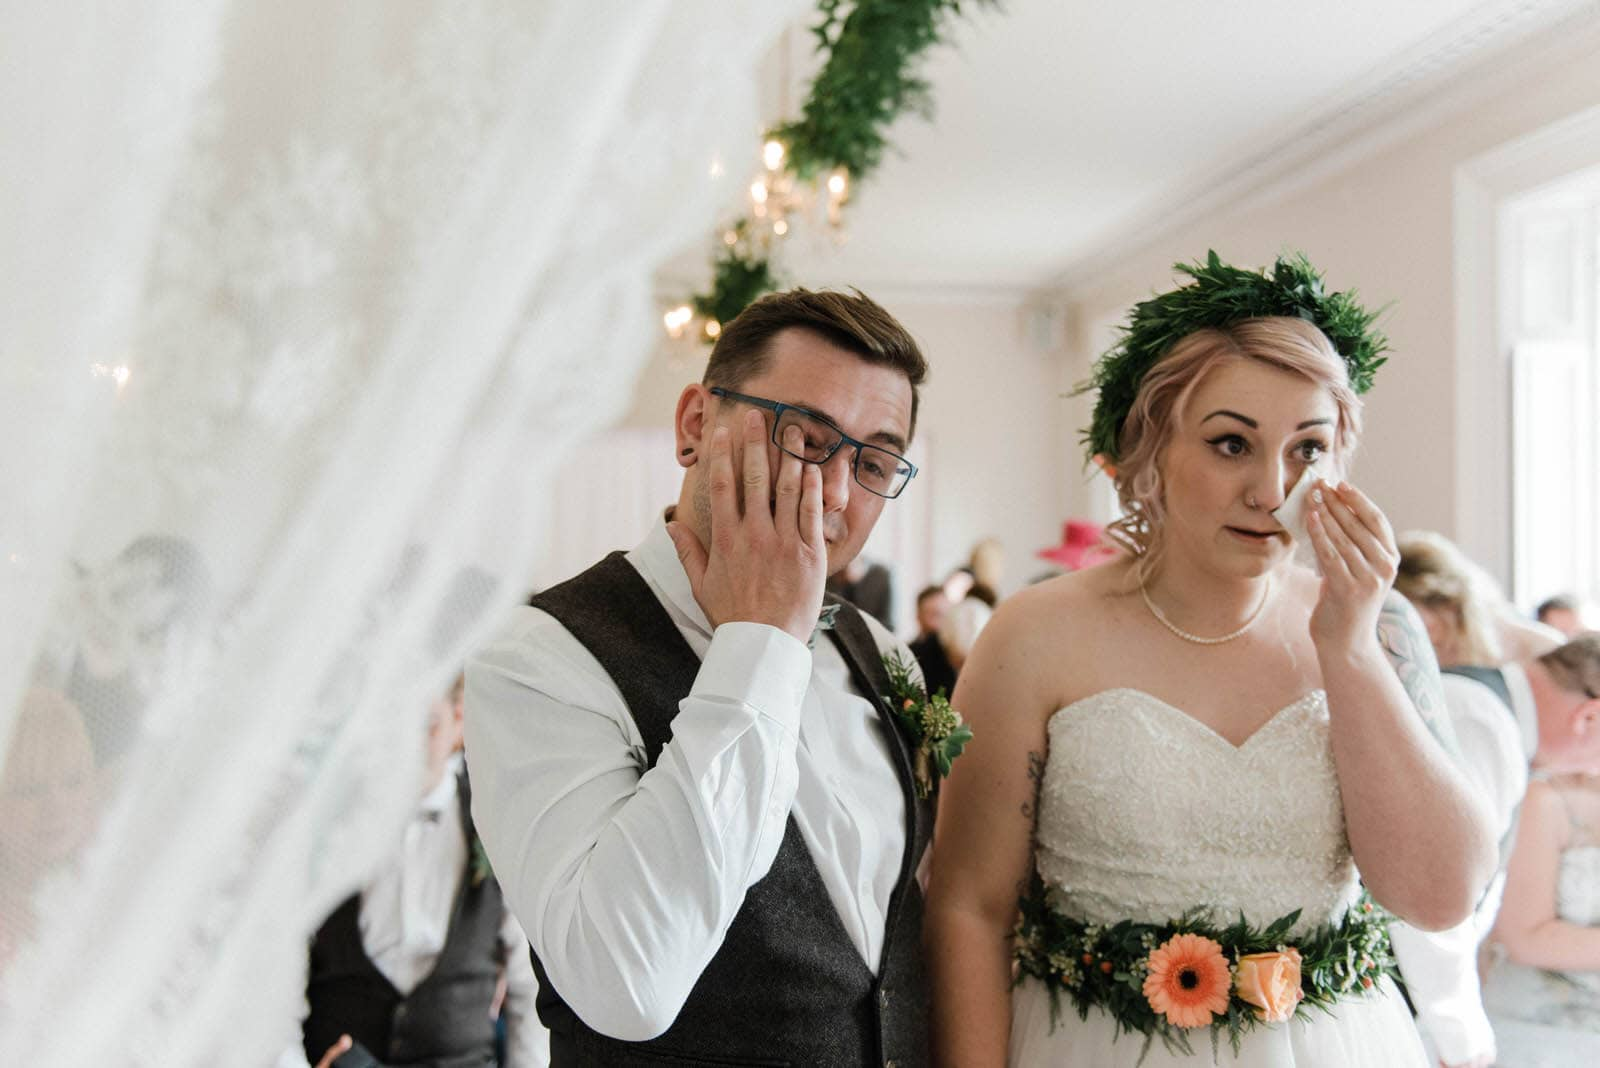 Emotional wedding photography of bride and groom crying during wedding ceremony at Hirst Priory